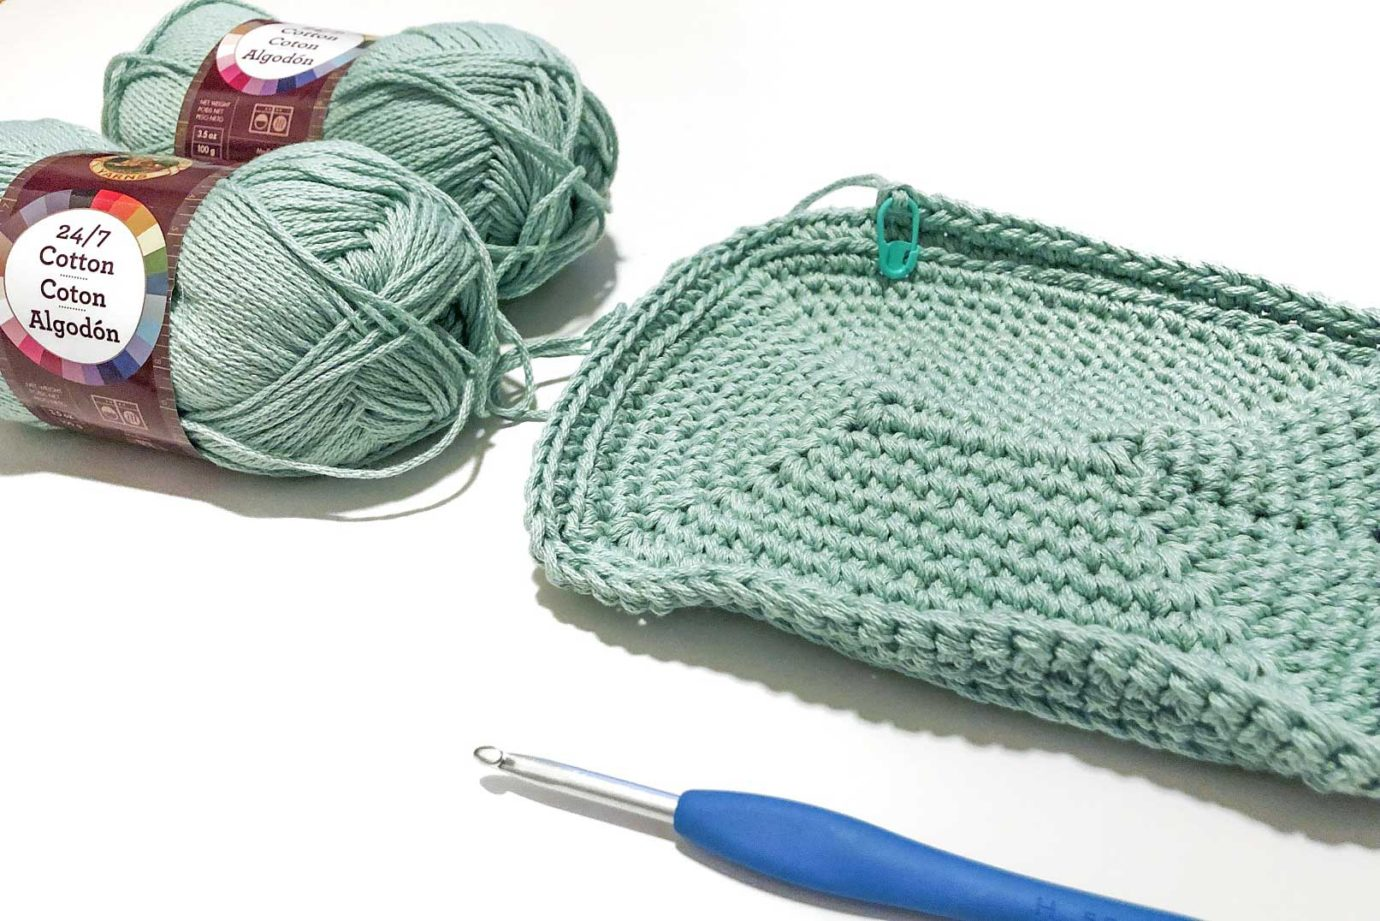 Free crochet pattern for a flat bottomed purse or lunchbox using Lion Brand 24/7 Cotton yarn.